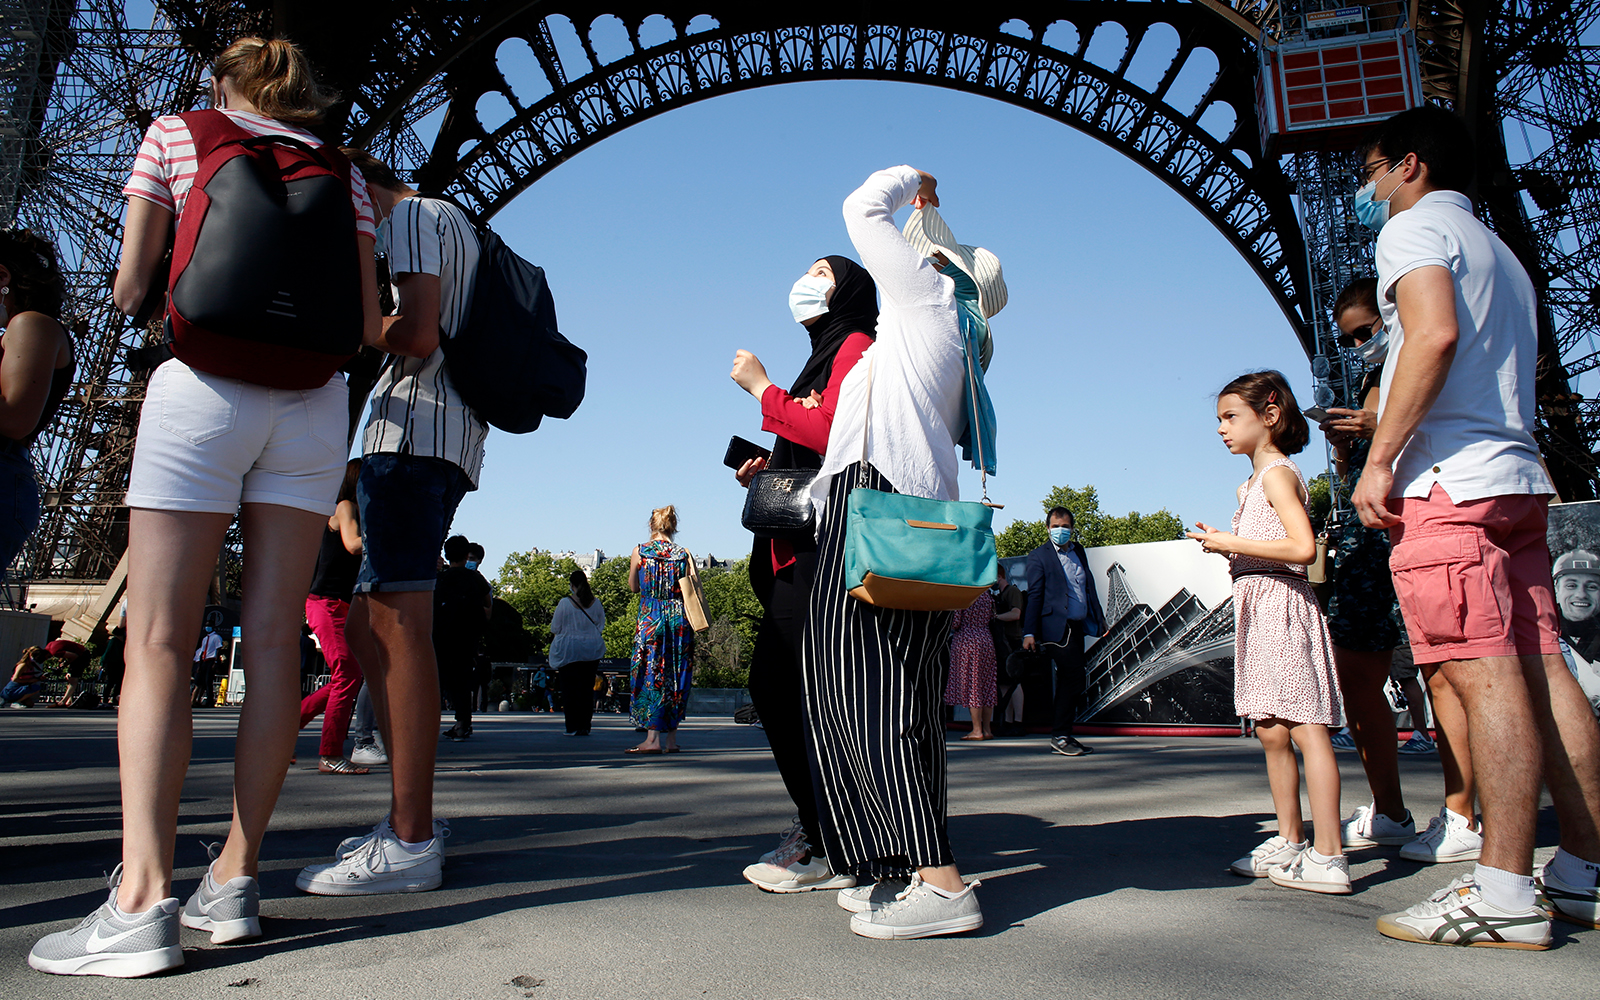 People line up to visit the Eiffel Tower in Paris